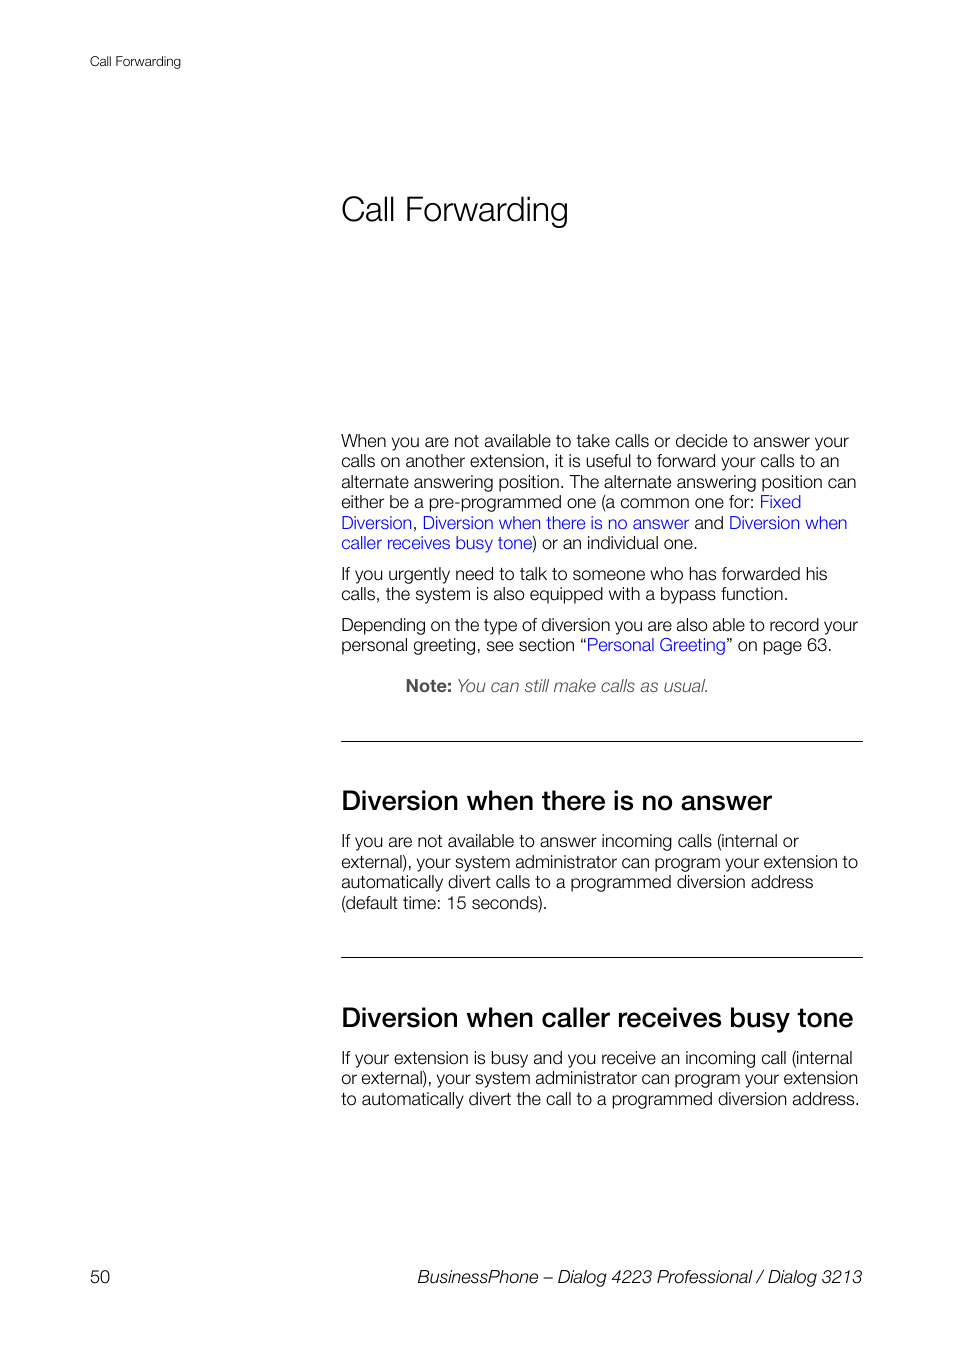 Call Forwarding Diversion When There Is No Answer Diversion When